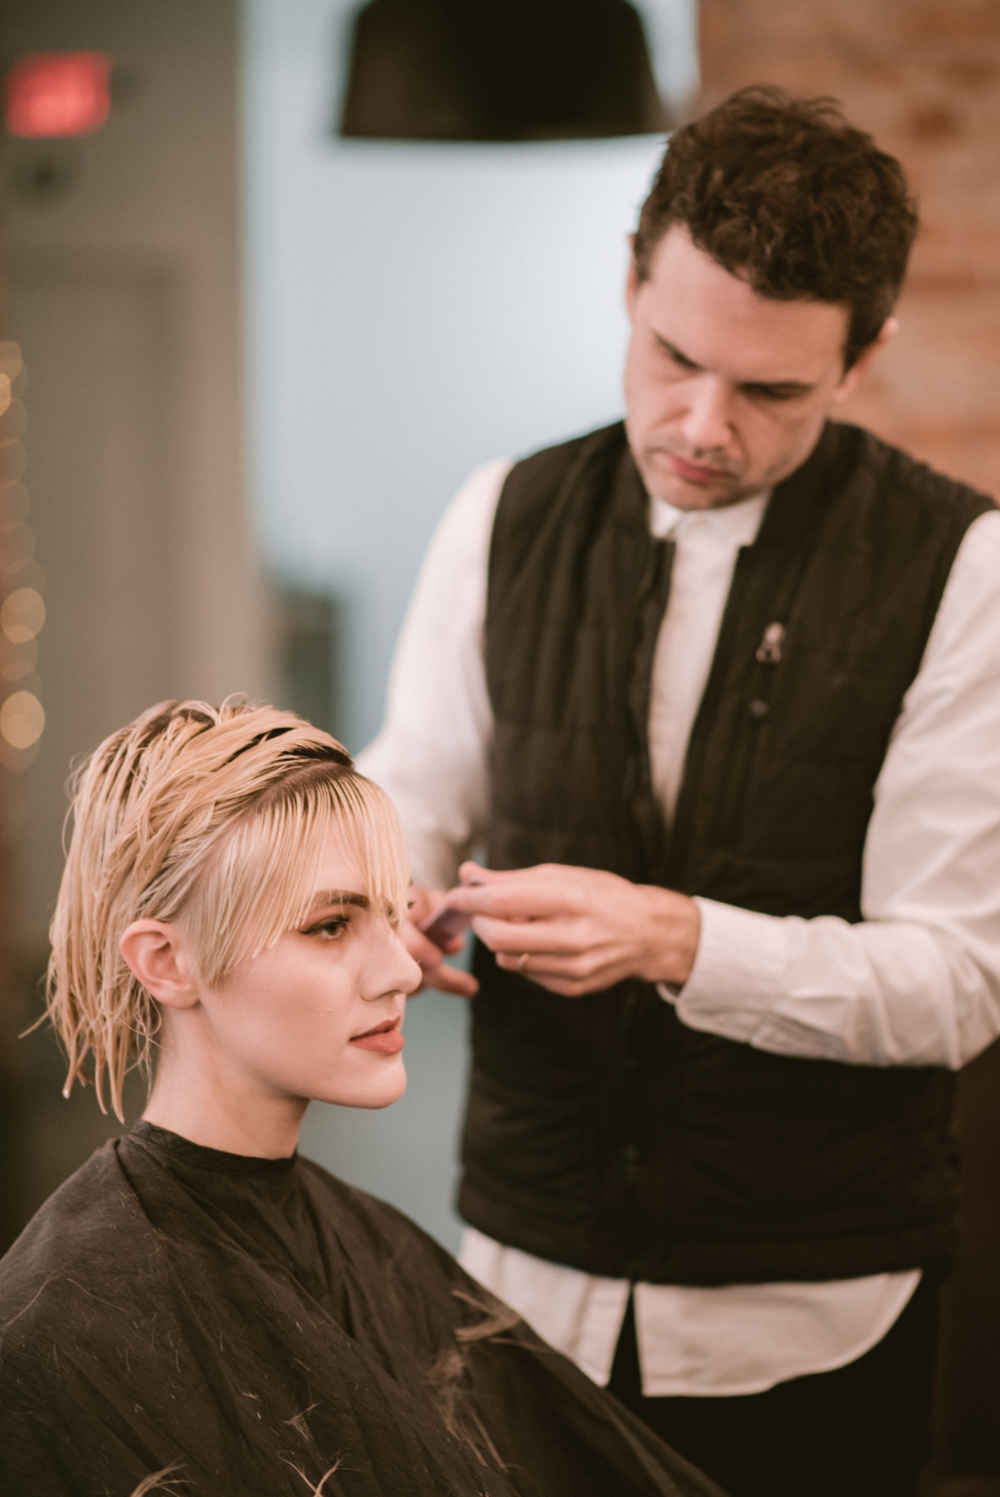 Careers - We are looking for artistic, passionate and self-motivating hairdressers and organized, people-pleasing guest coordinators to join our team. We are always accepting applications for here and our sister location, 501 Salon & Spa. We will place talent where we think they will thrive and be most successful. Please send your resume to heather@501salon.com.